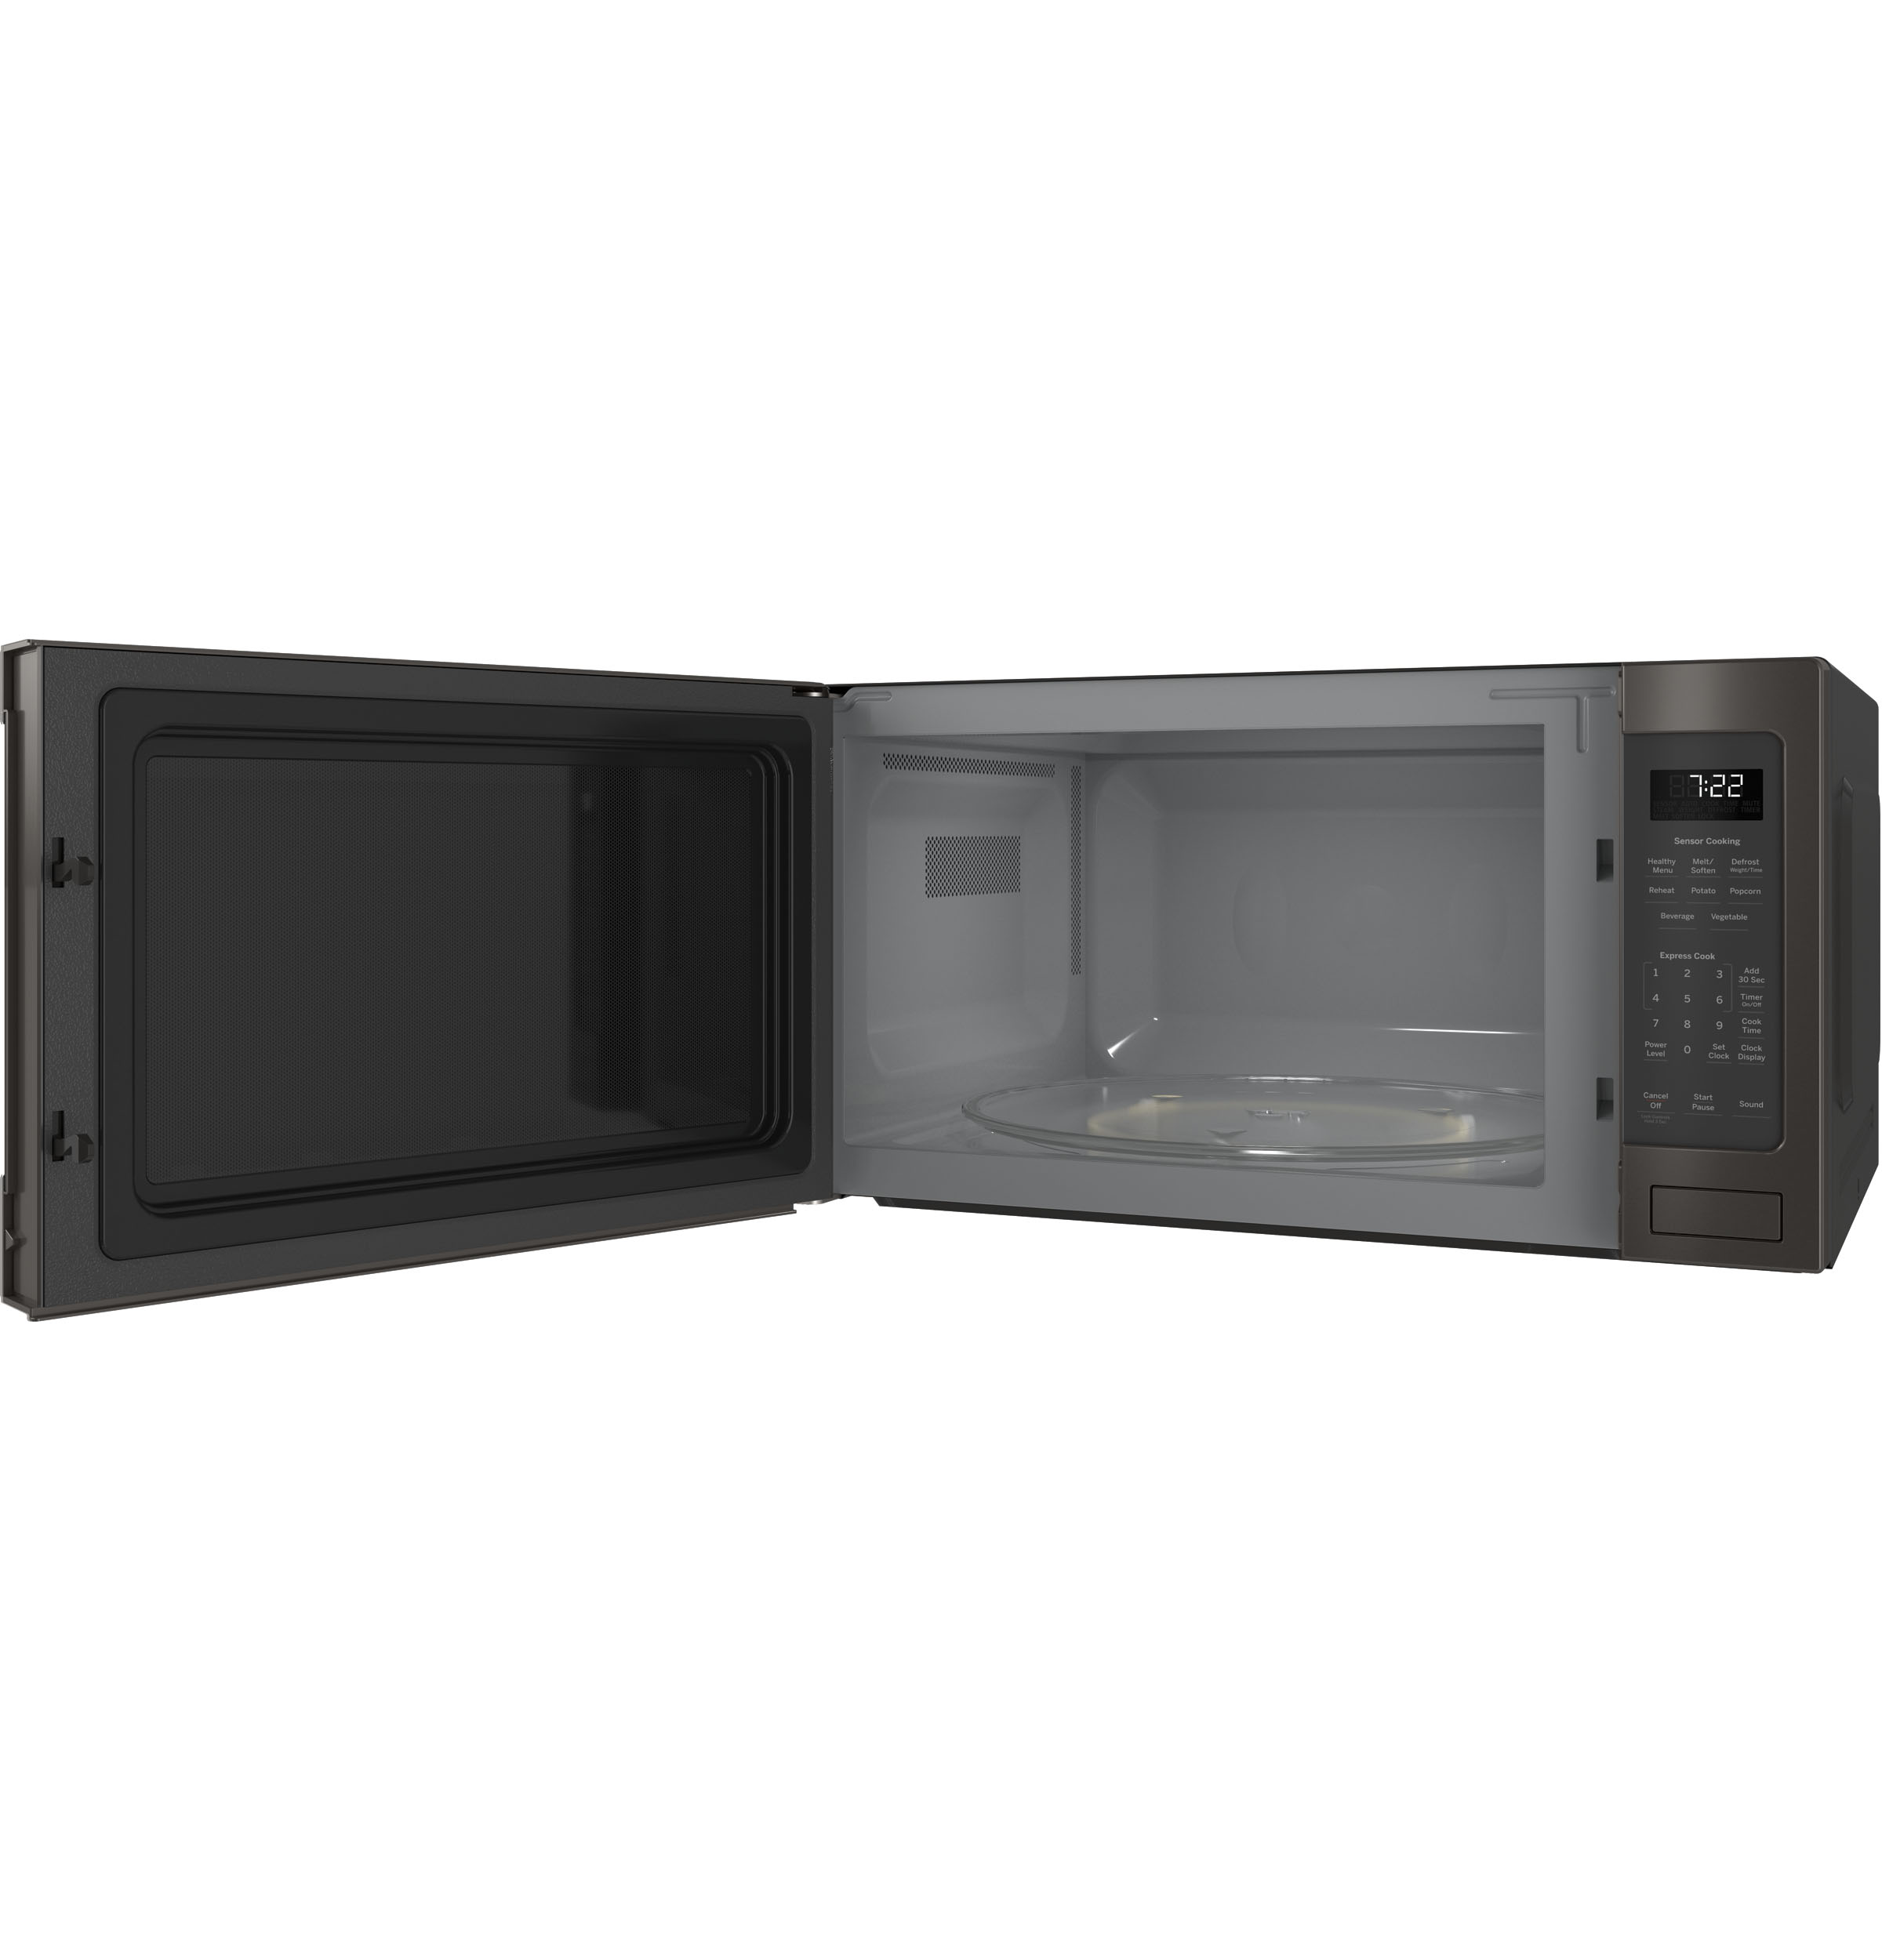 Model: PES7227BLTS | GE Profile GE Profile™ Series 2.2 Cu. Ft. Countertop Sensor Microwave Oven